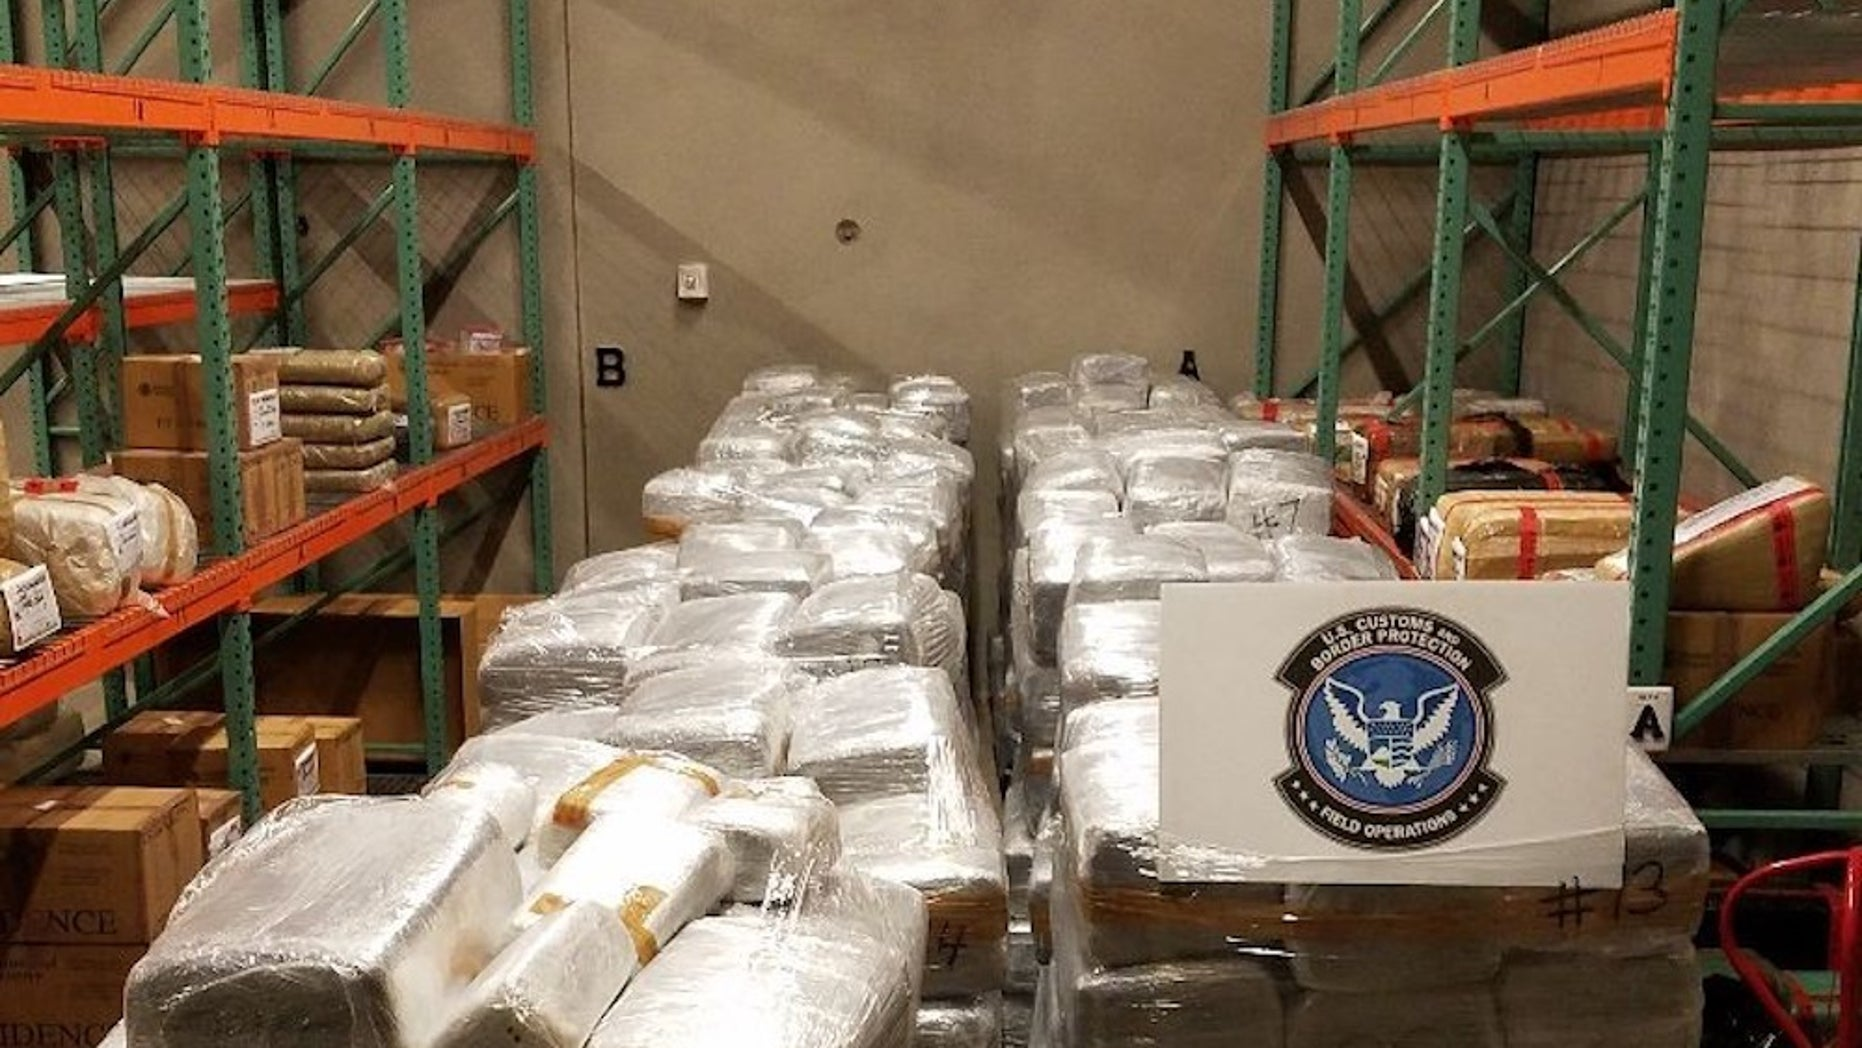 U.S. Customs and Border Protection officers in Nogales, Arizona, seized 13,700 pounds of marijuana, worth more than $6.8 million, that was hidden among bell peppers on a tractor trailer at the Mariposa Commercial Facility on Saturday, May 13, 2017 .